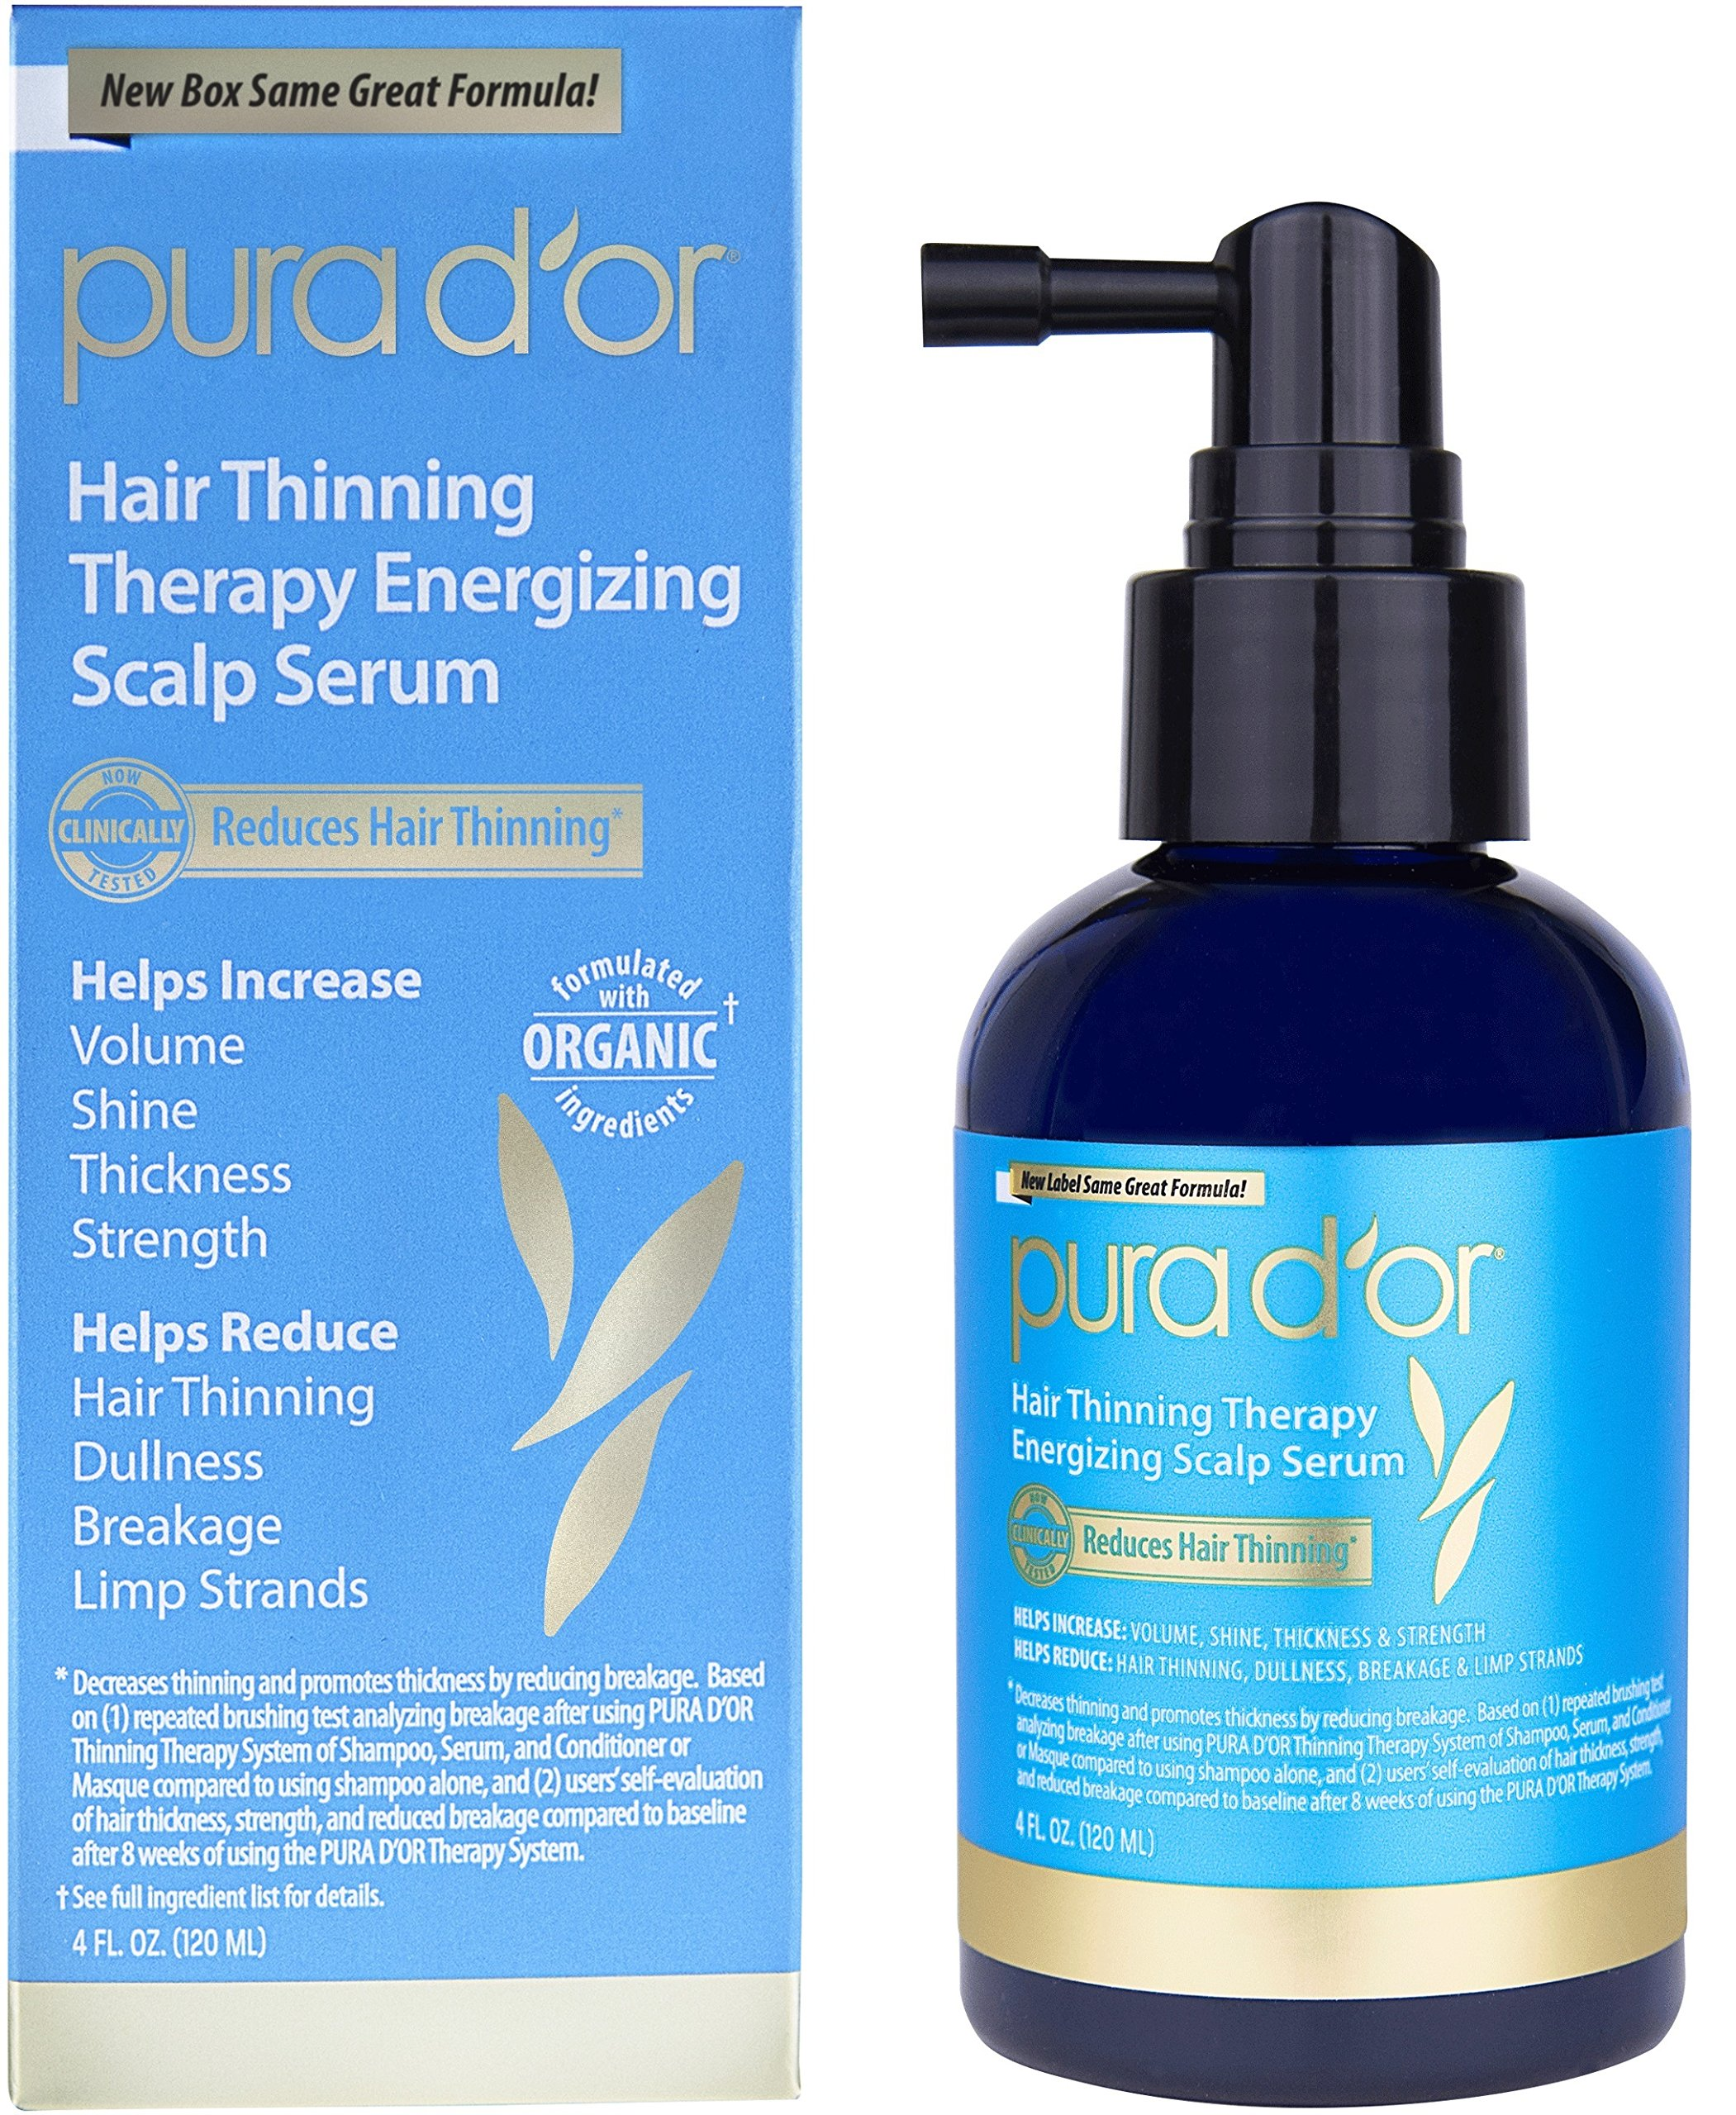 PURA D'OR Hair Thinning Therapy Energizing Scalp Serum Revitalizer, Infused with Organic Argan Oil, Biotin & Natural Ingredients, for All Hair Types, Men and Women, 4 Fl Oz (Packaging may vary)